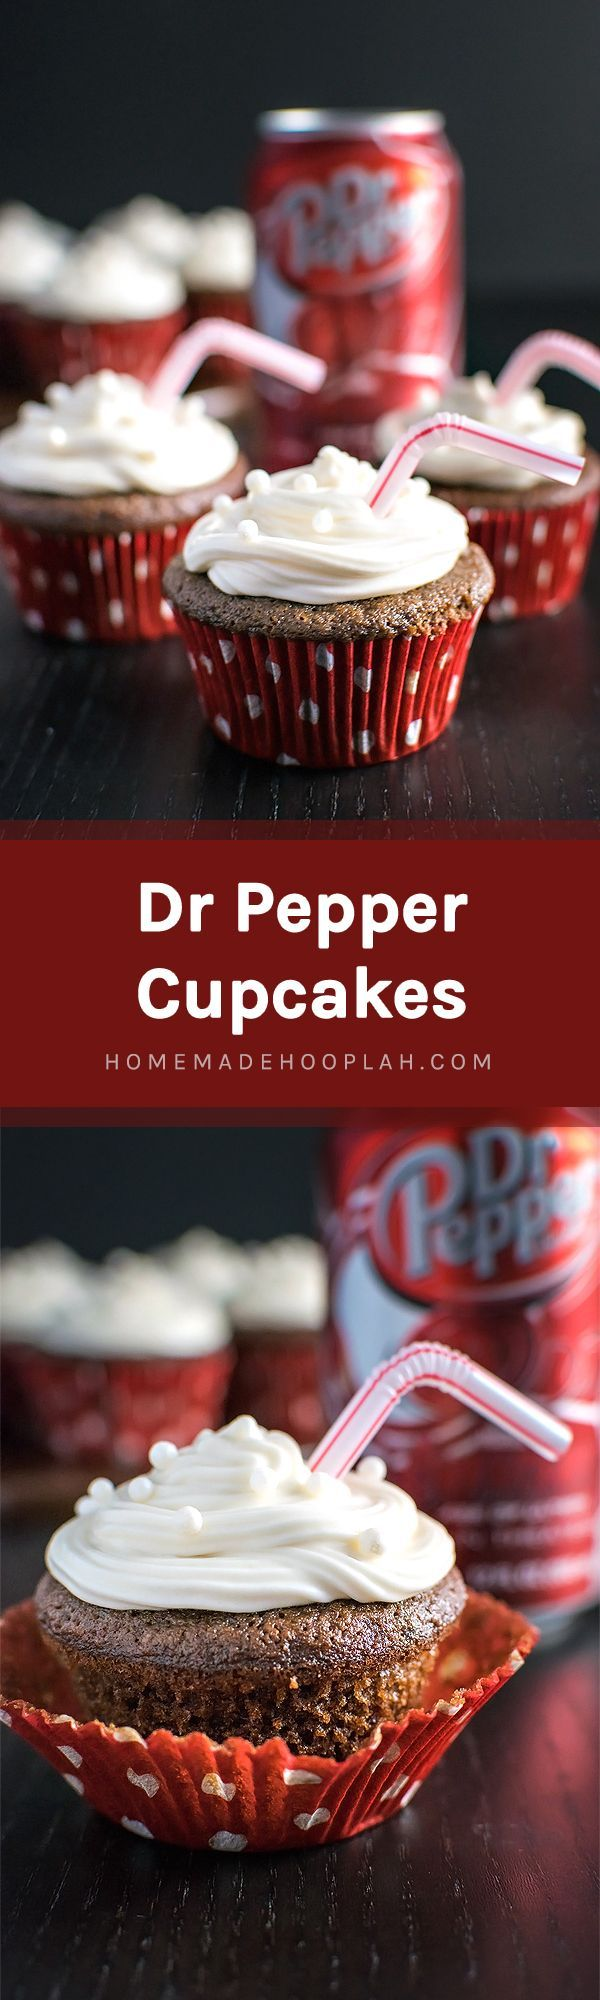 Dr Pepper Cupcakes! Have a Dr Pepper fan in your life? Then they're going to love these! Rich chocolate buttermilk cupcakes with a hint of their favorite fizzy soda. | http://HomemadeHooplah.com